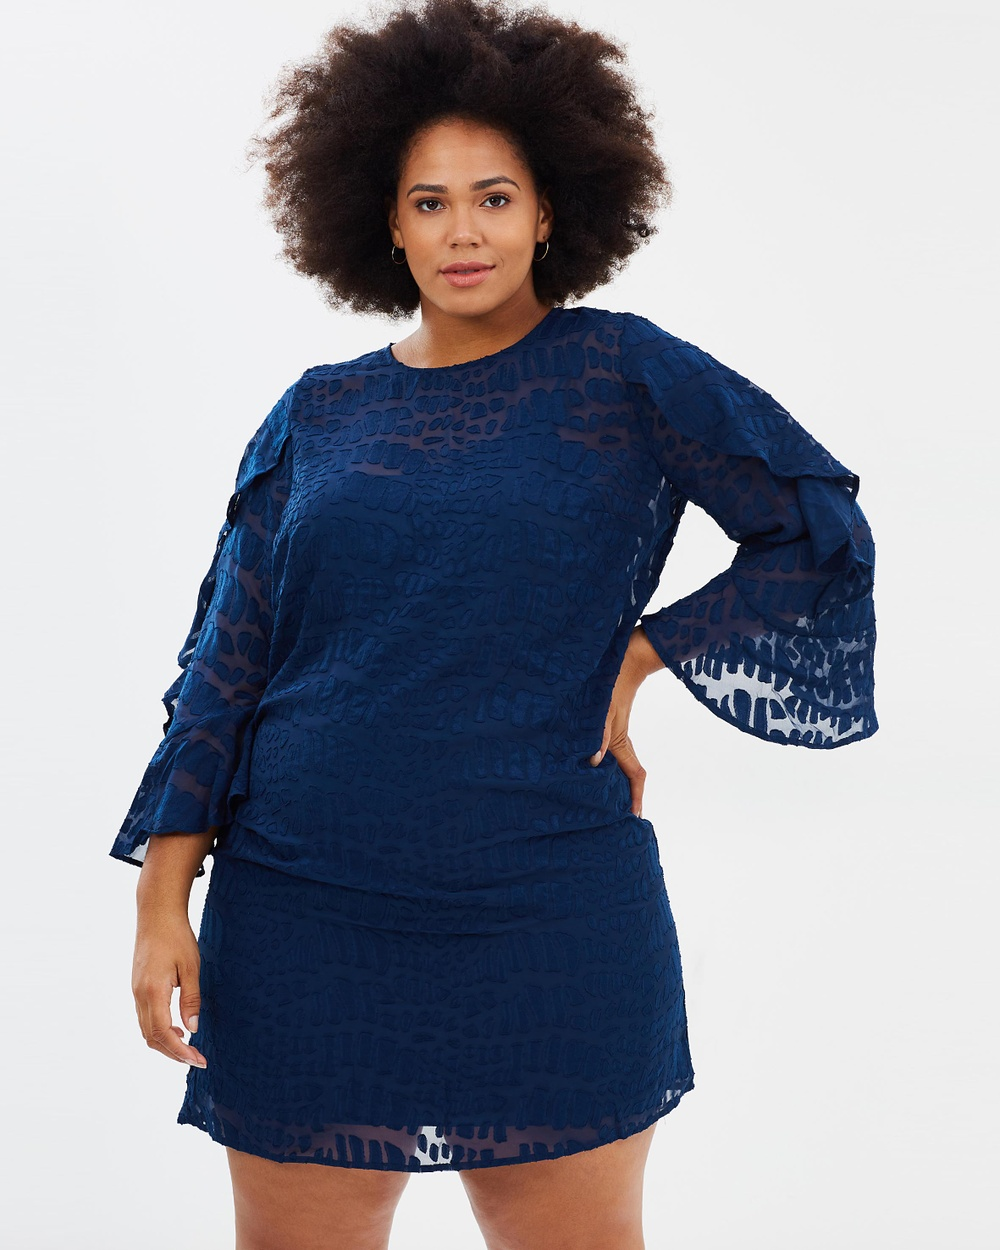 Cooper St CS CURVY Into The Pines Shift Dress Dresses Navy CS CURVY Into The Pines Shift Dress